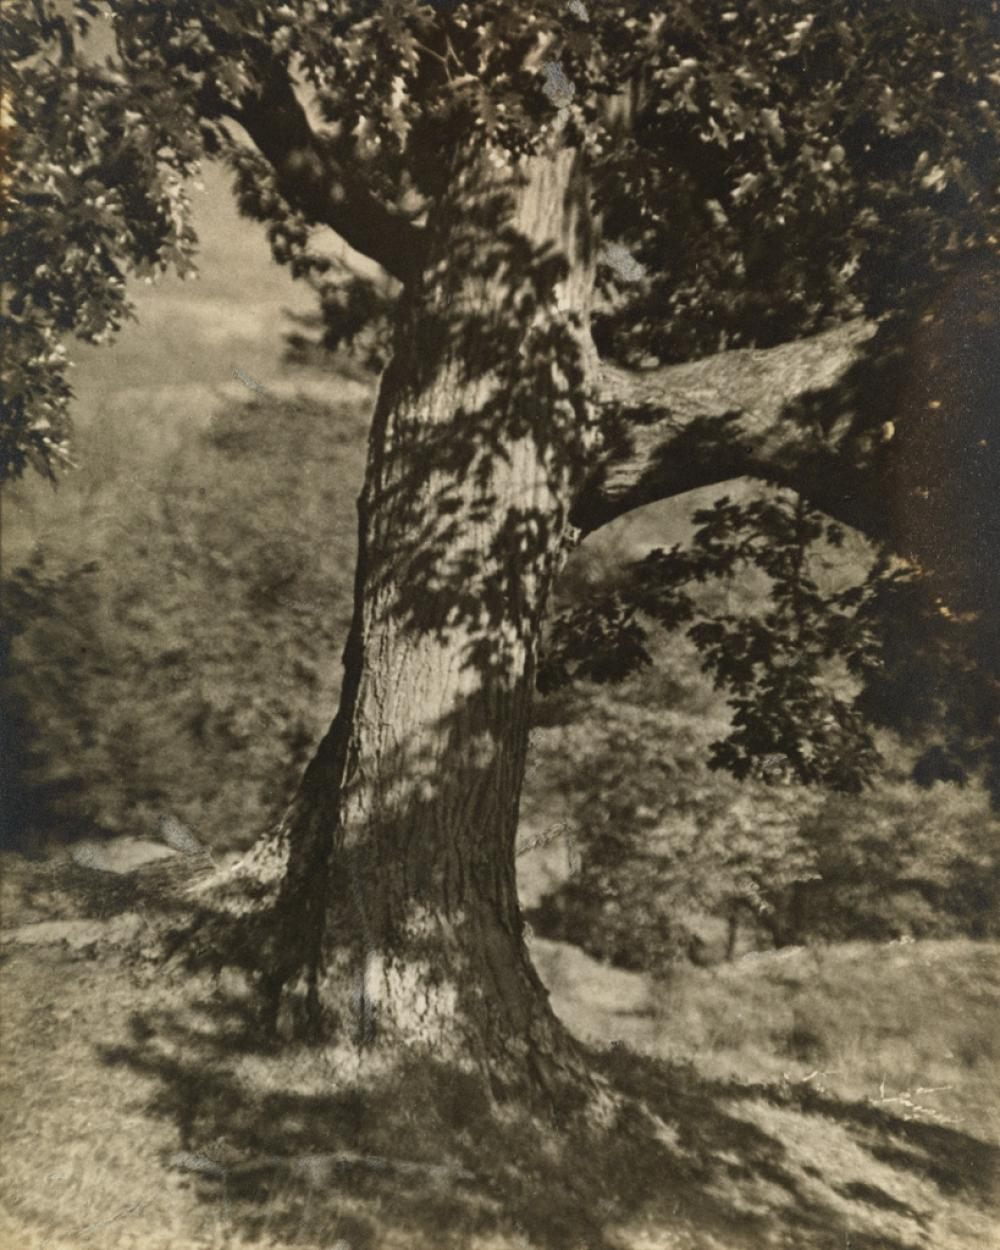 GEORGE H. SEELEY (1880-1955) Group of 11 Pictorialist photographs.